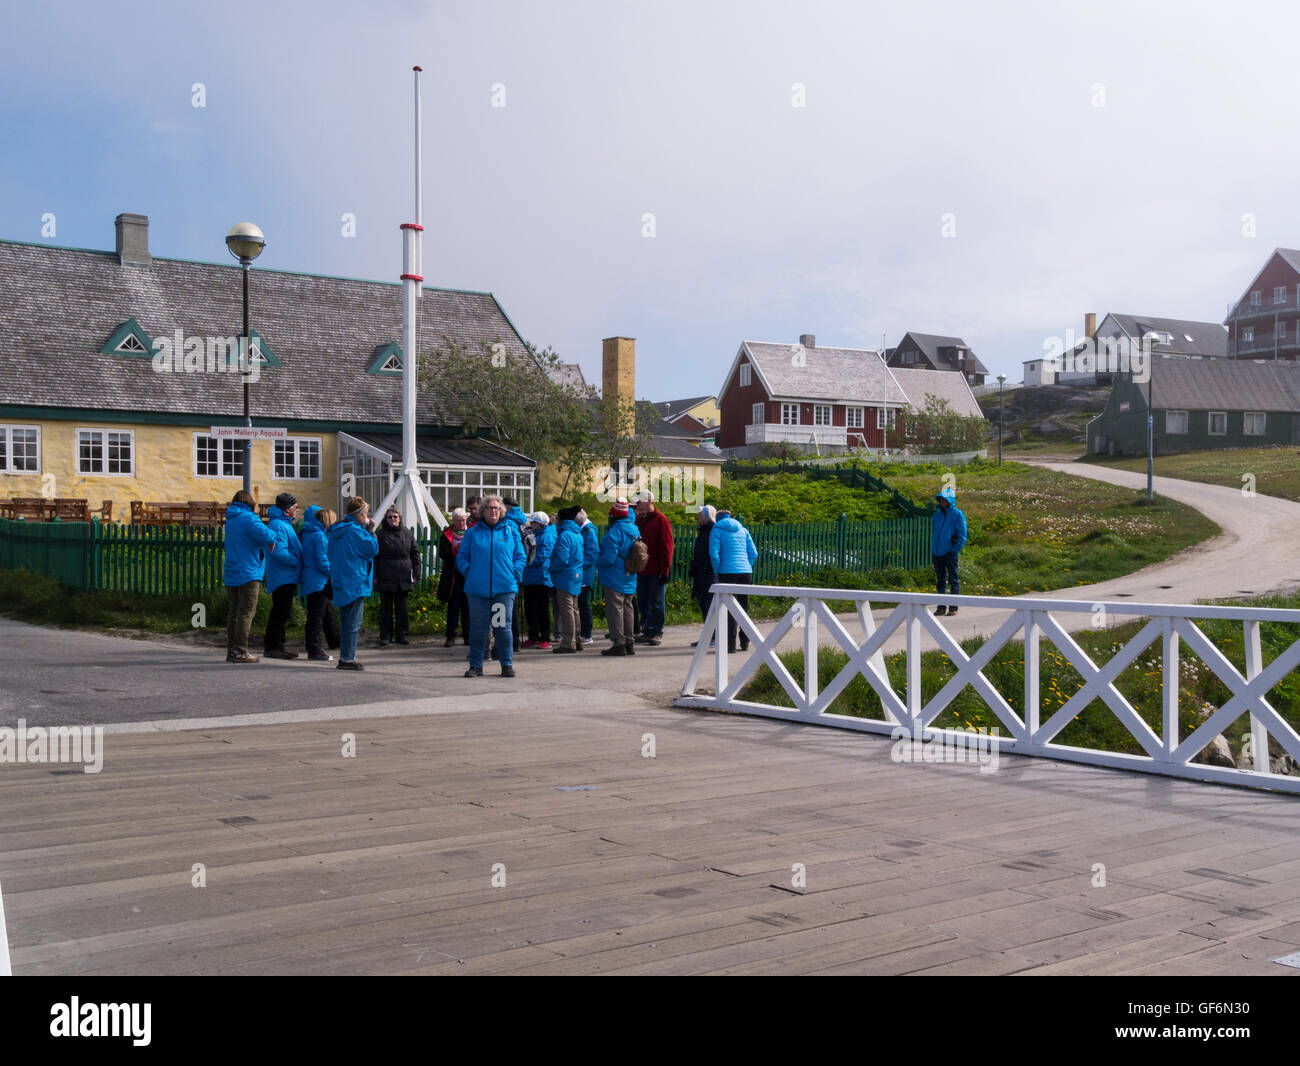 Group tourists on walking tour of Nuuk capital of Greenland countrys largest cultural centre in  Sermersooq municipality Stock Photo